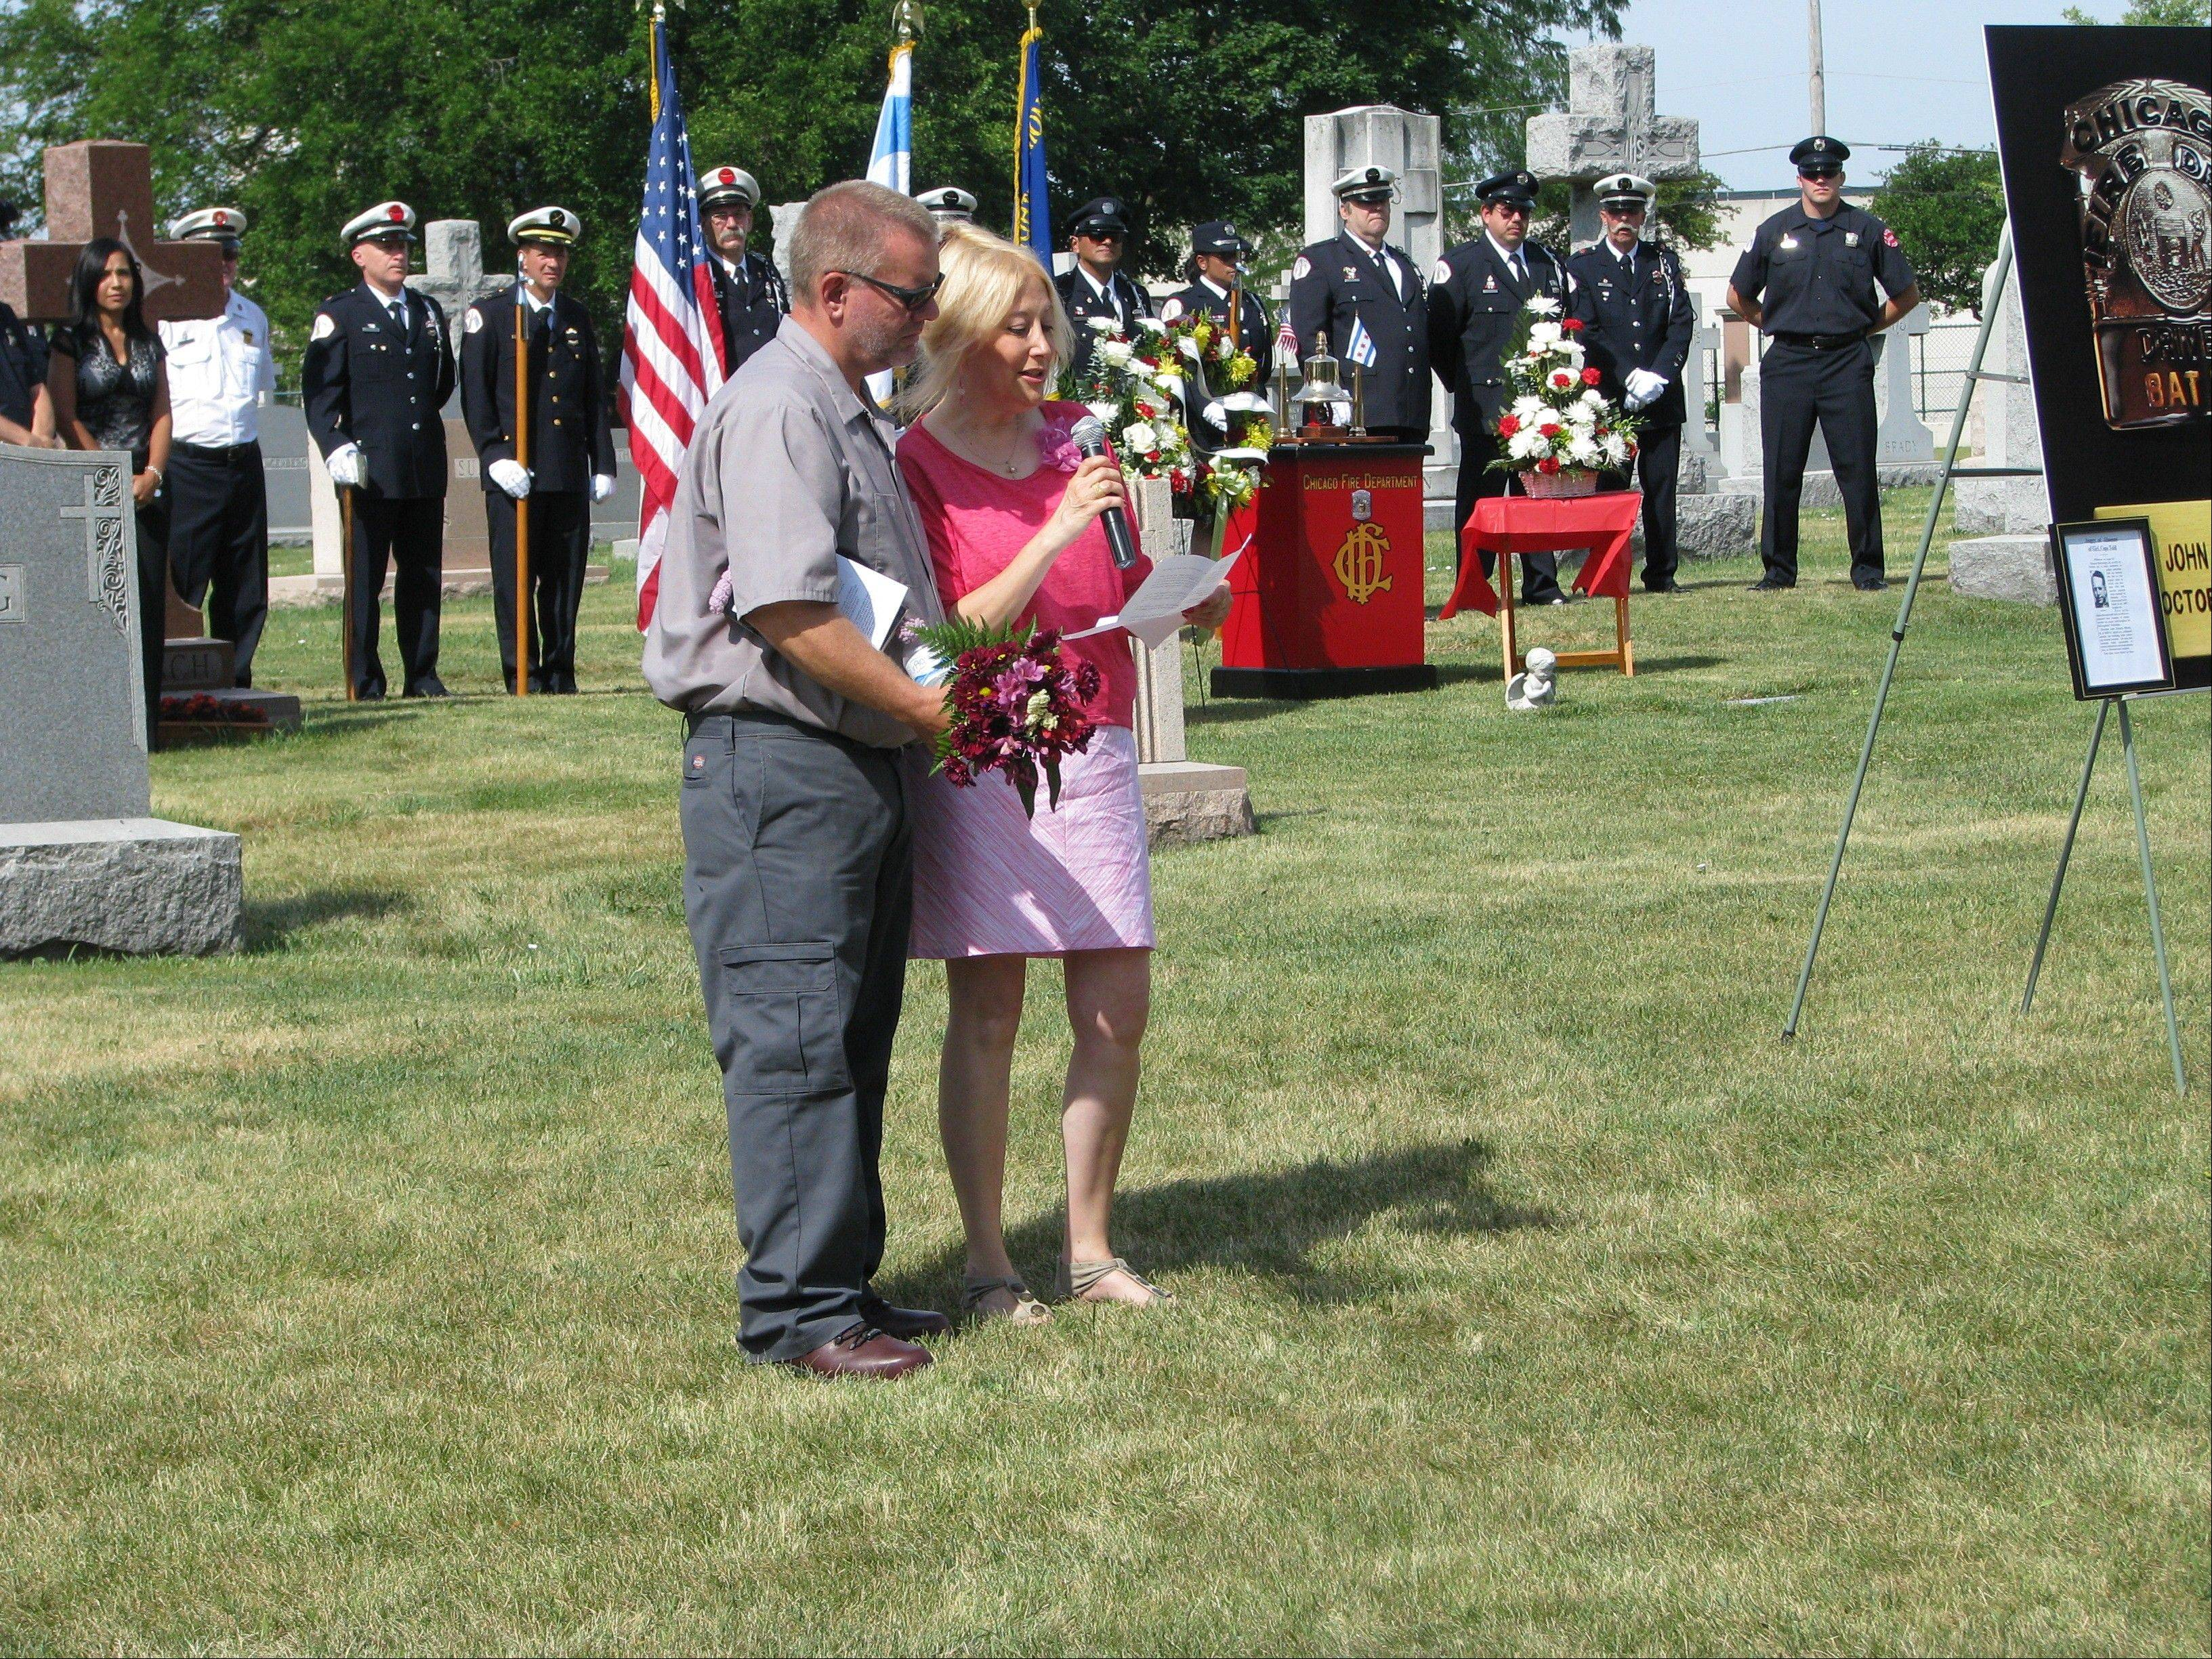 Debbie McCann, whose mother survived the Oct. 25, 1952, Argyle Hotel fire, speaks at the graveside ceremony for John Minich, the firefighter who died after saving her mother, at All Saints Cemetery in Des Plaines. Cemetery employee John Stewart is on the left.